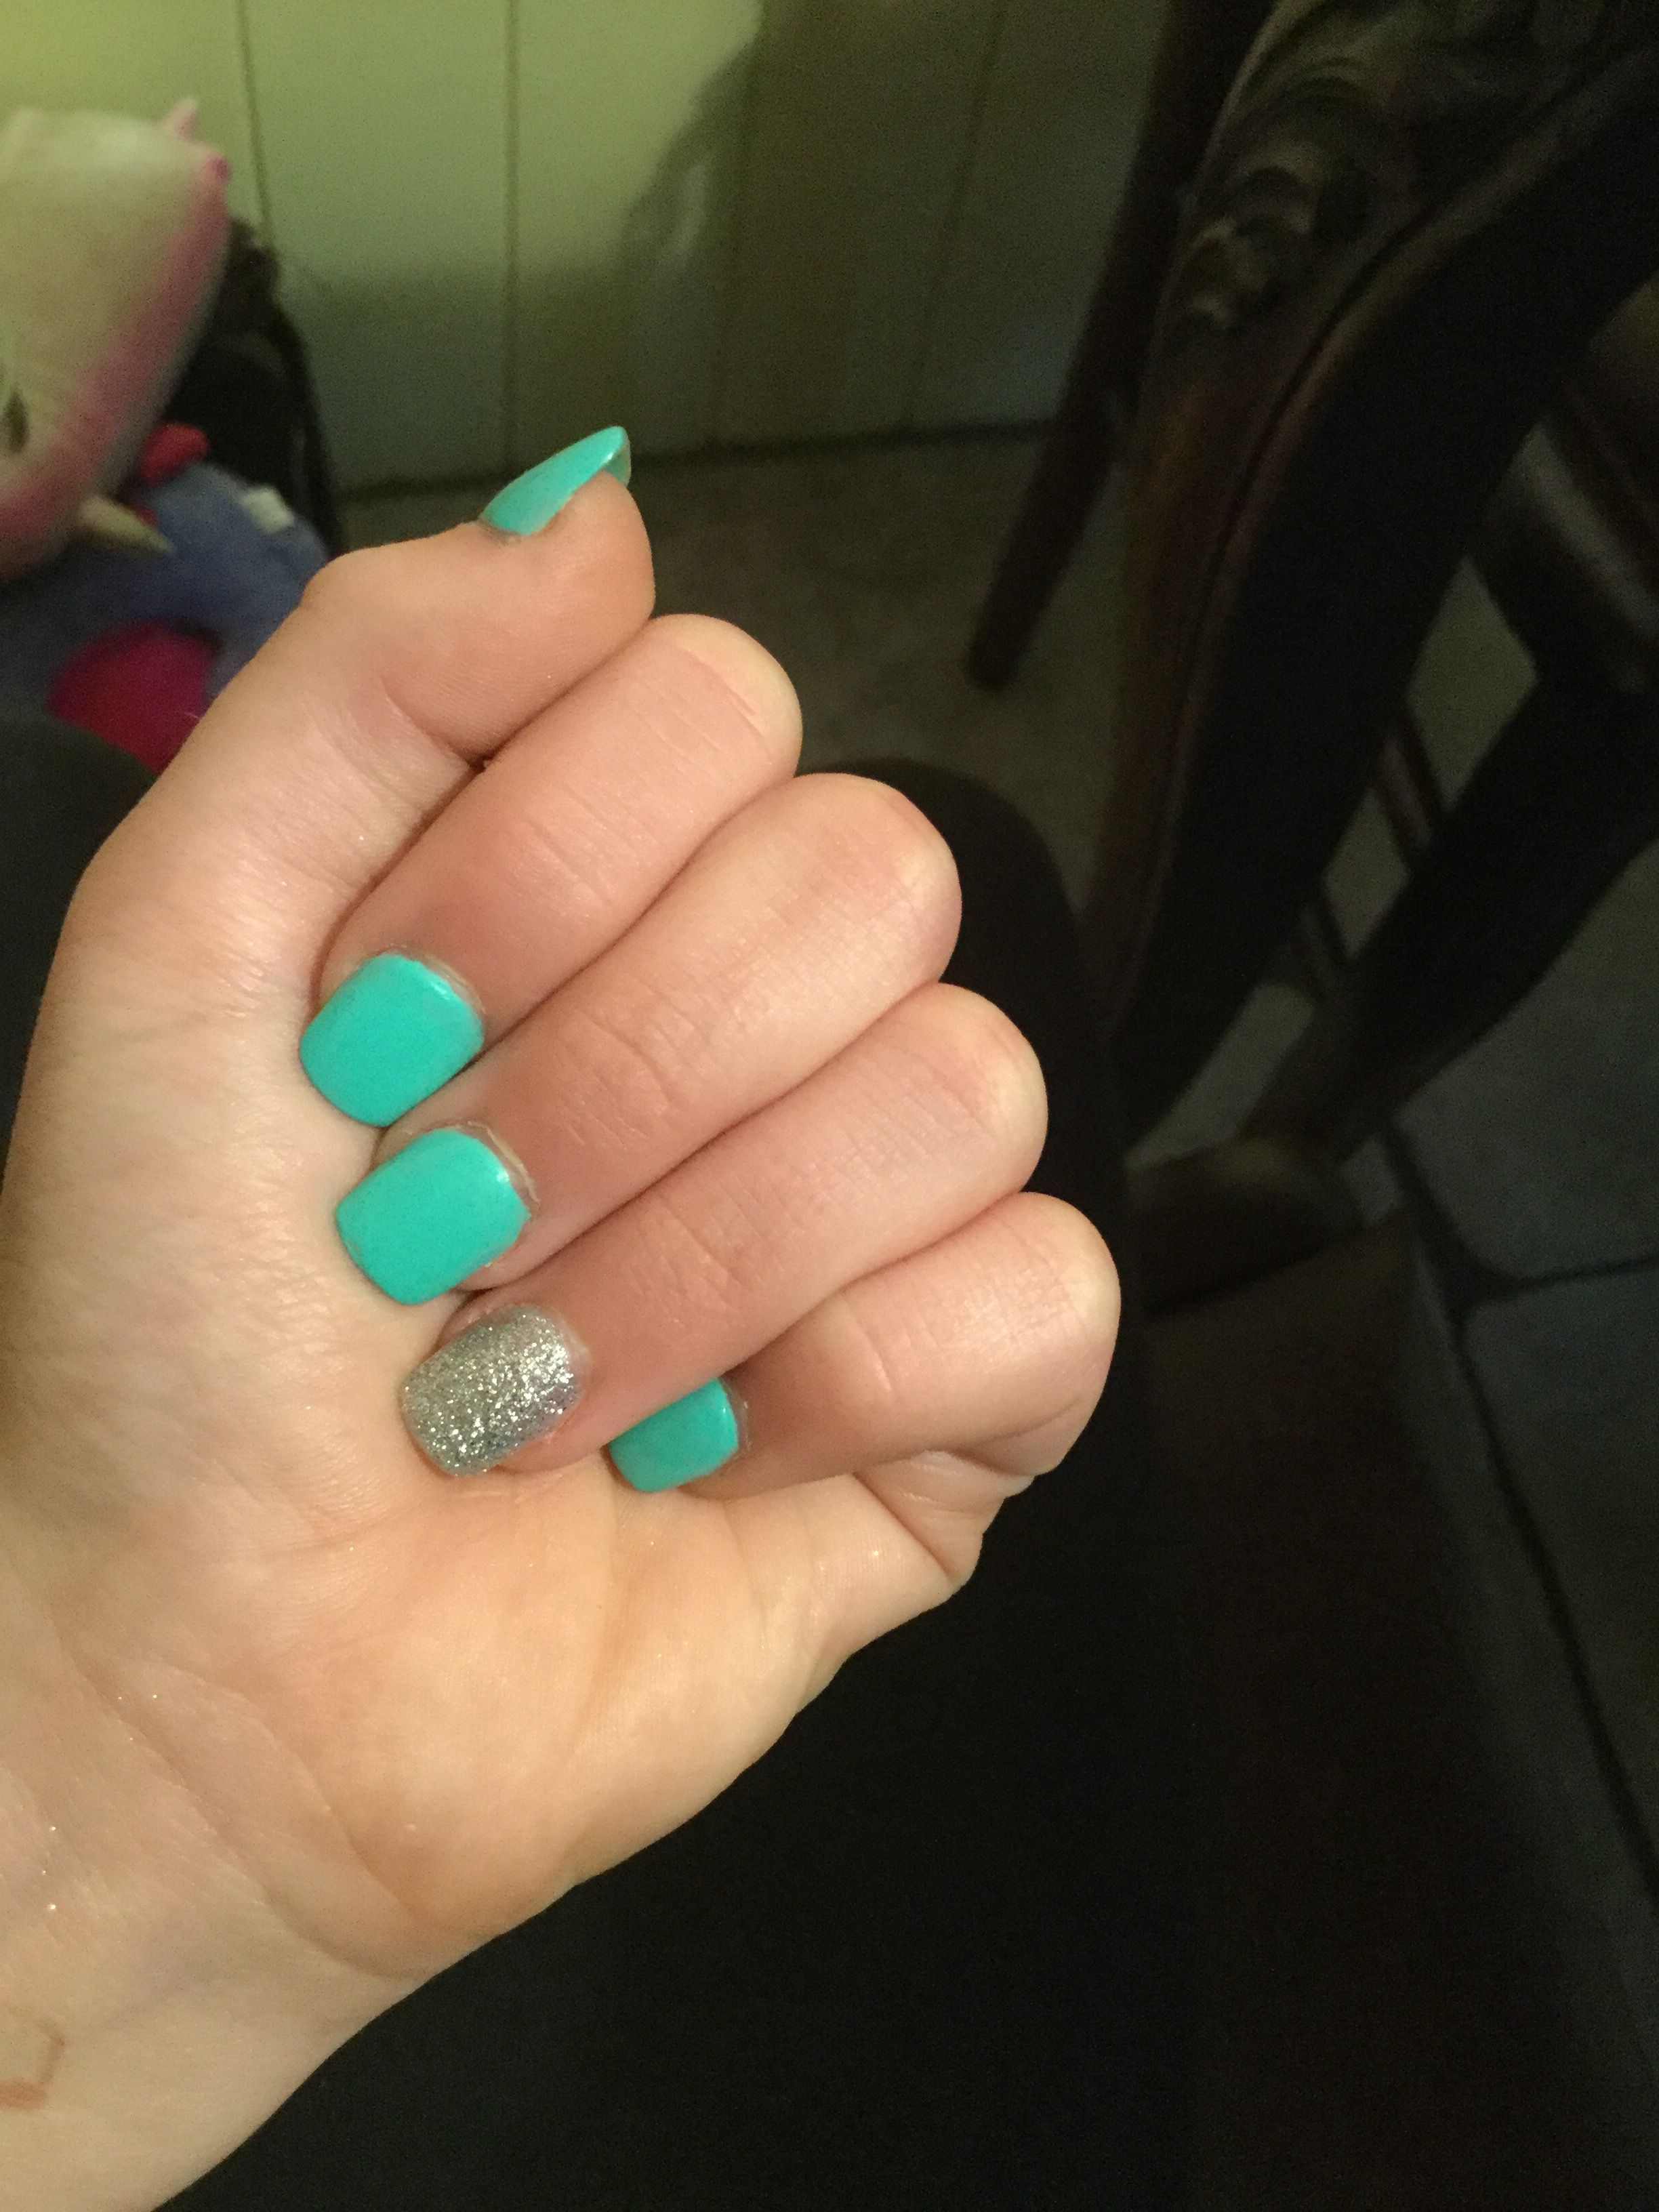 Mint Green Short Square Acrylic Nails Square Acrylic Nails Short Square Acrylic Nails Rounded Acrylic Nails